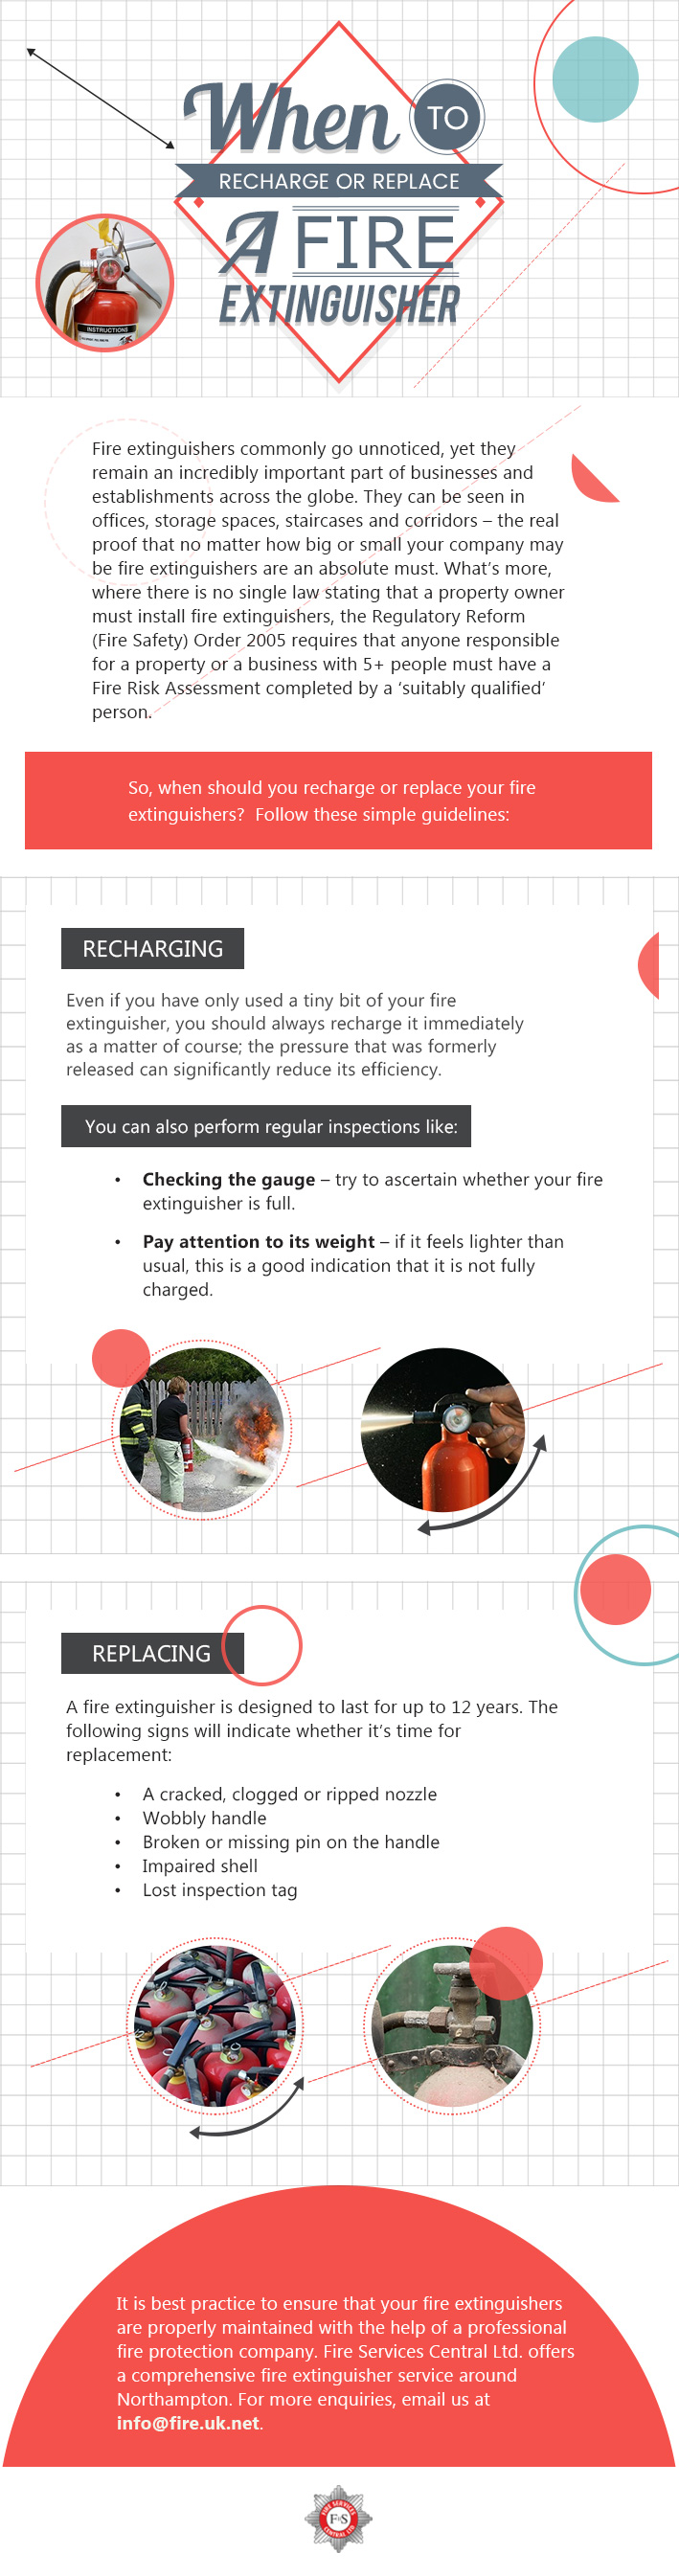 When to Replace or Recharge a Fire Extinguisher